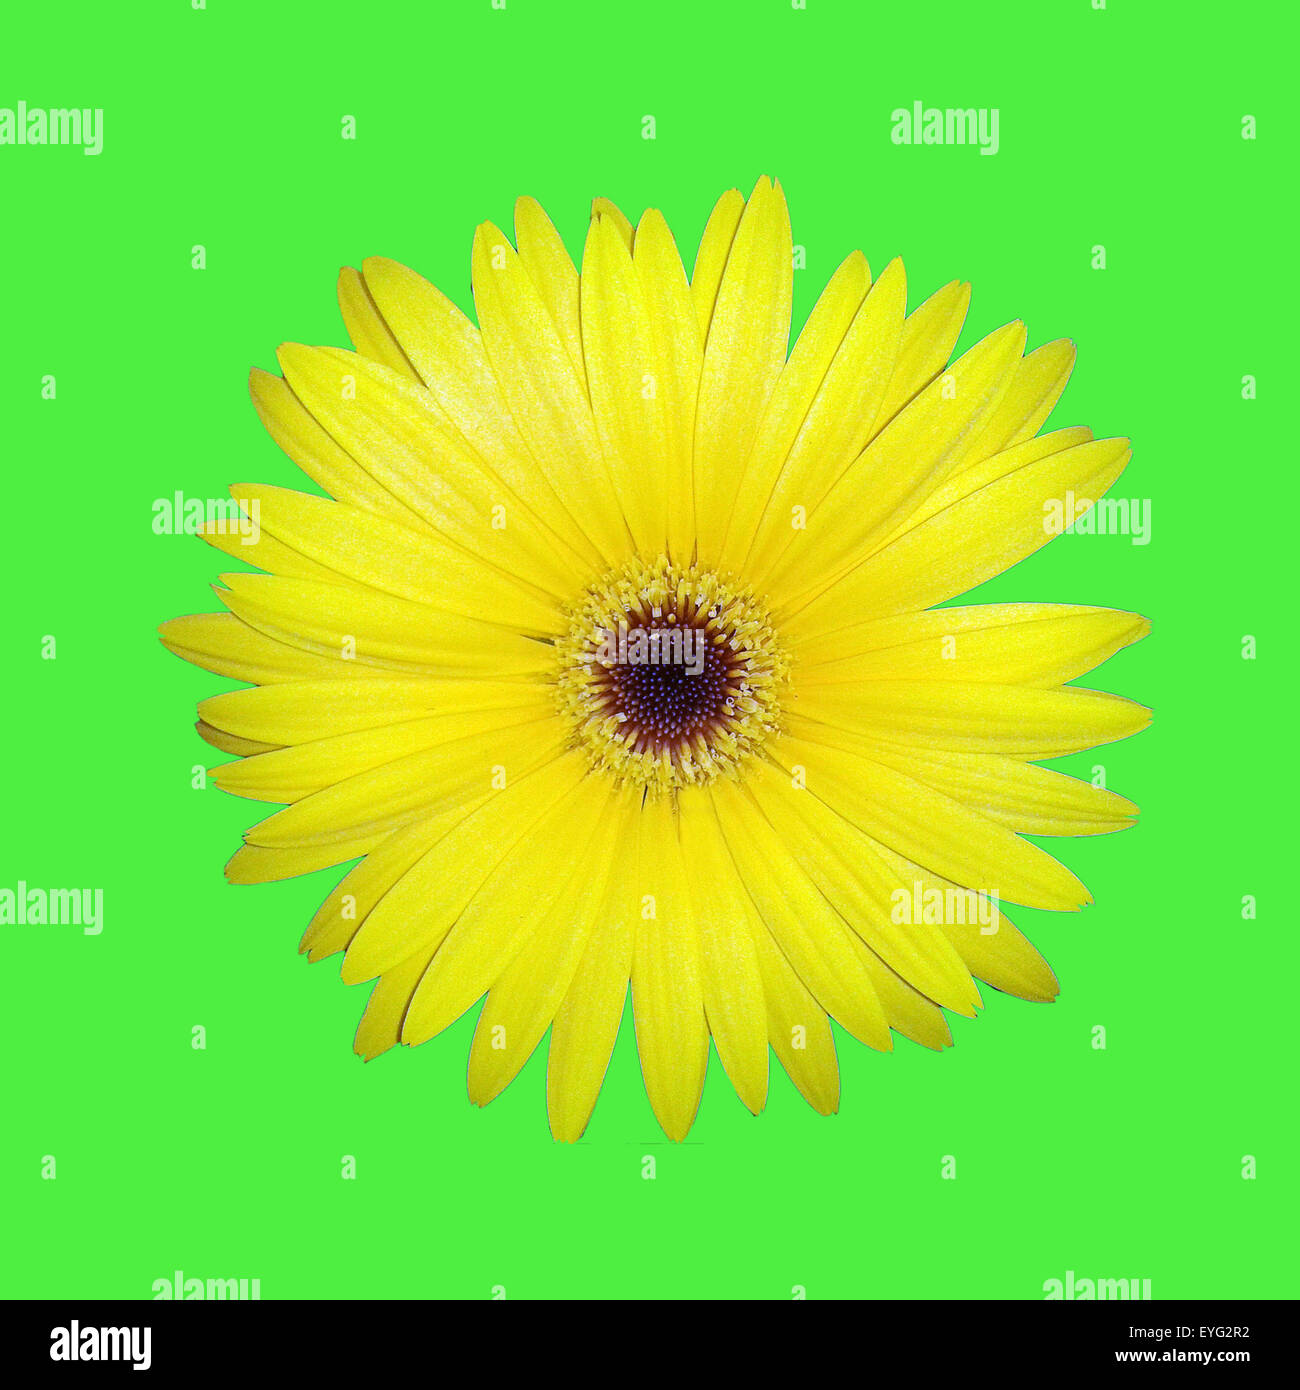 Gerbera, Afrika, Madagaskar, Sommerblume, Stock Photo